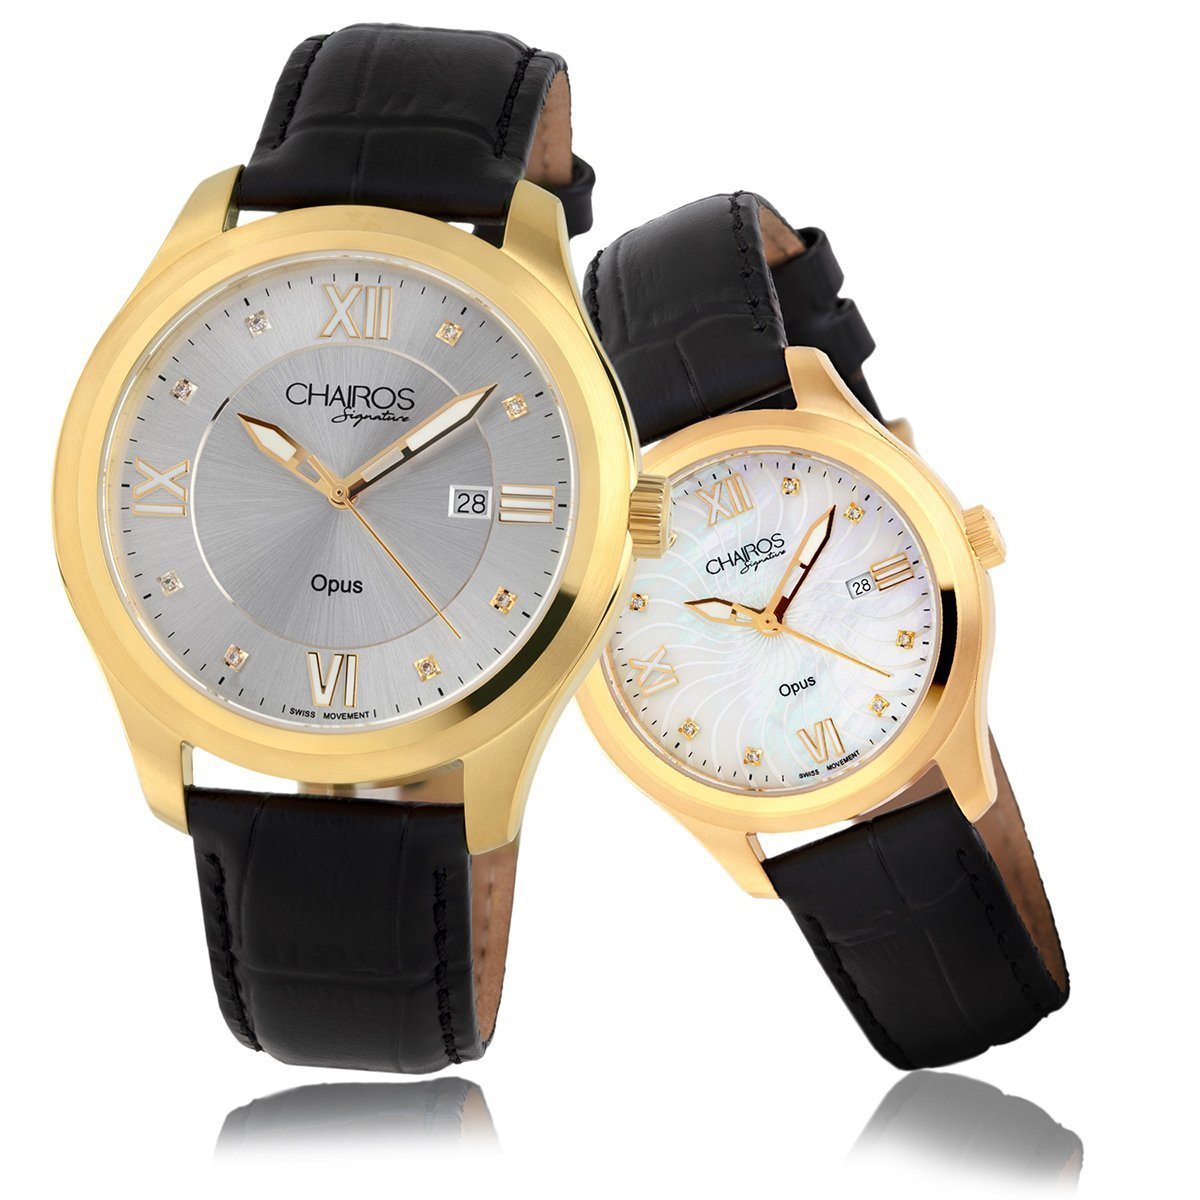 Chairos Opus part of Chairos watches